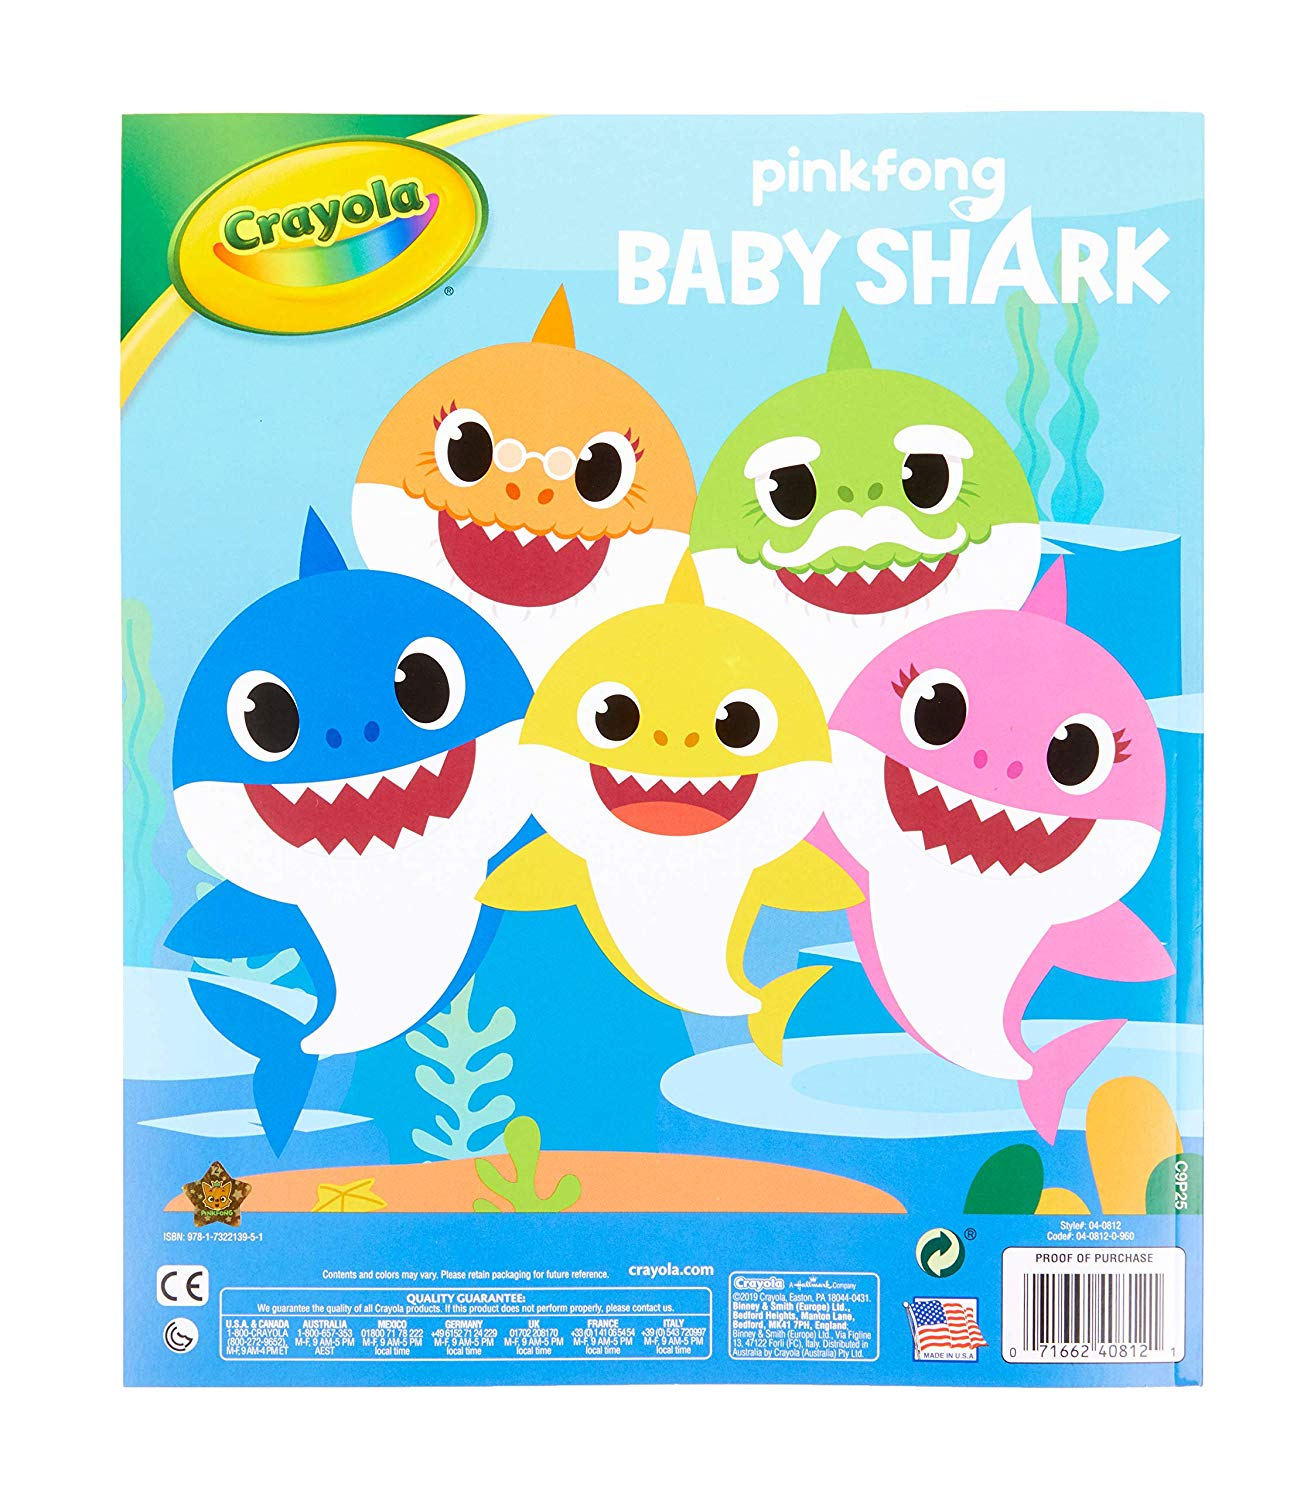 Crayola Baby Shark Coloring Pages - Greatspot1